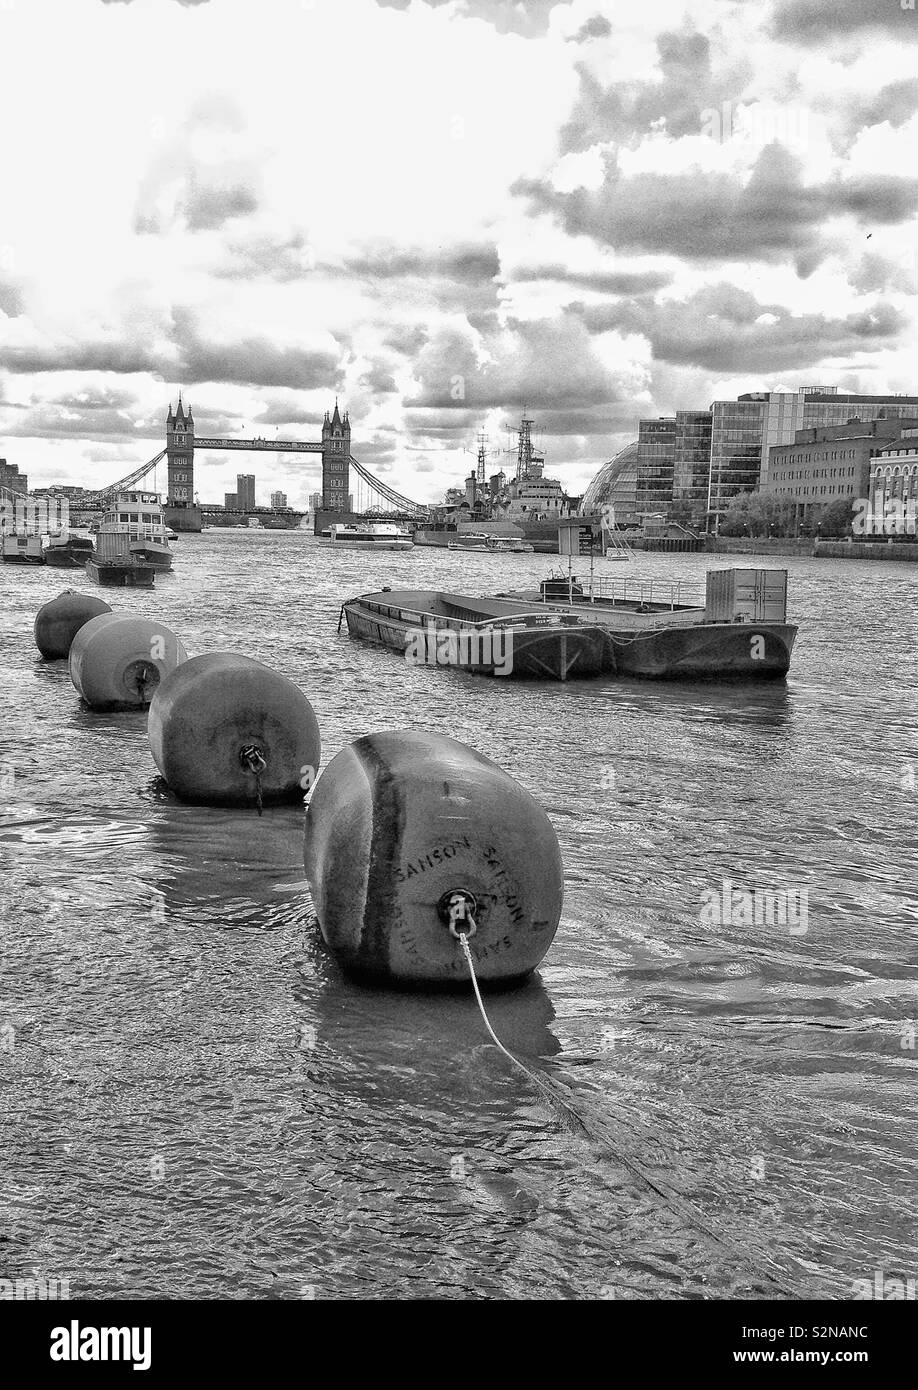 View along an overcast River Thames in London, England, looking towards the iconic Tower Bridge. Stock Photo